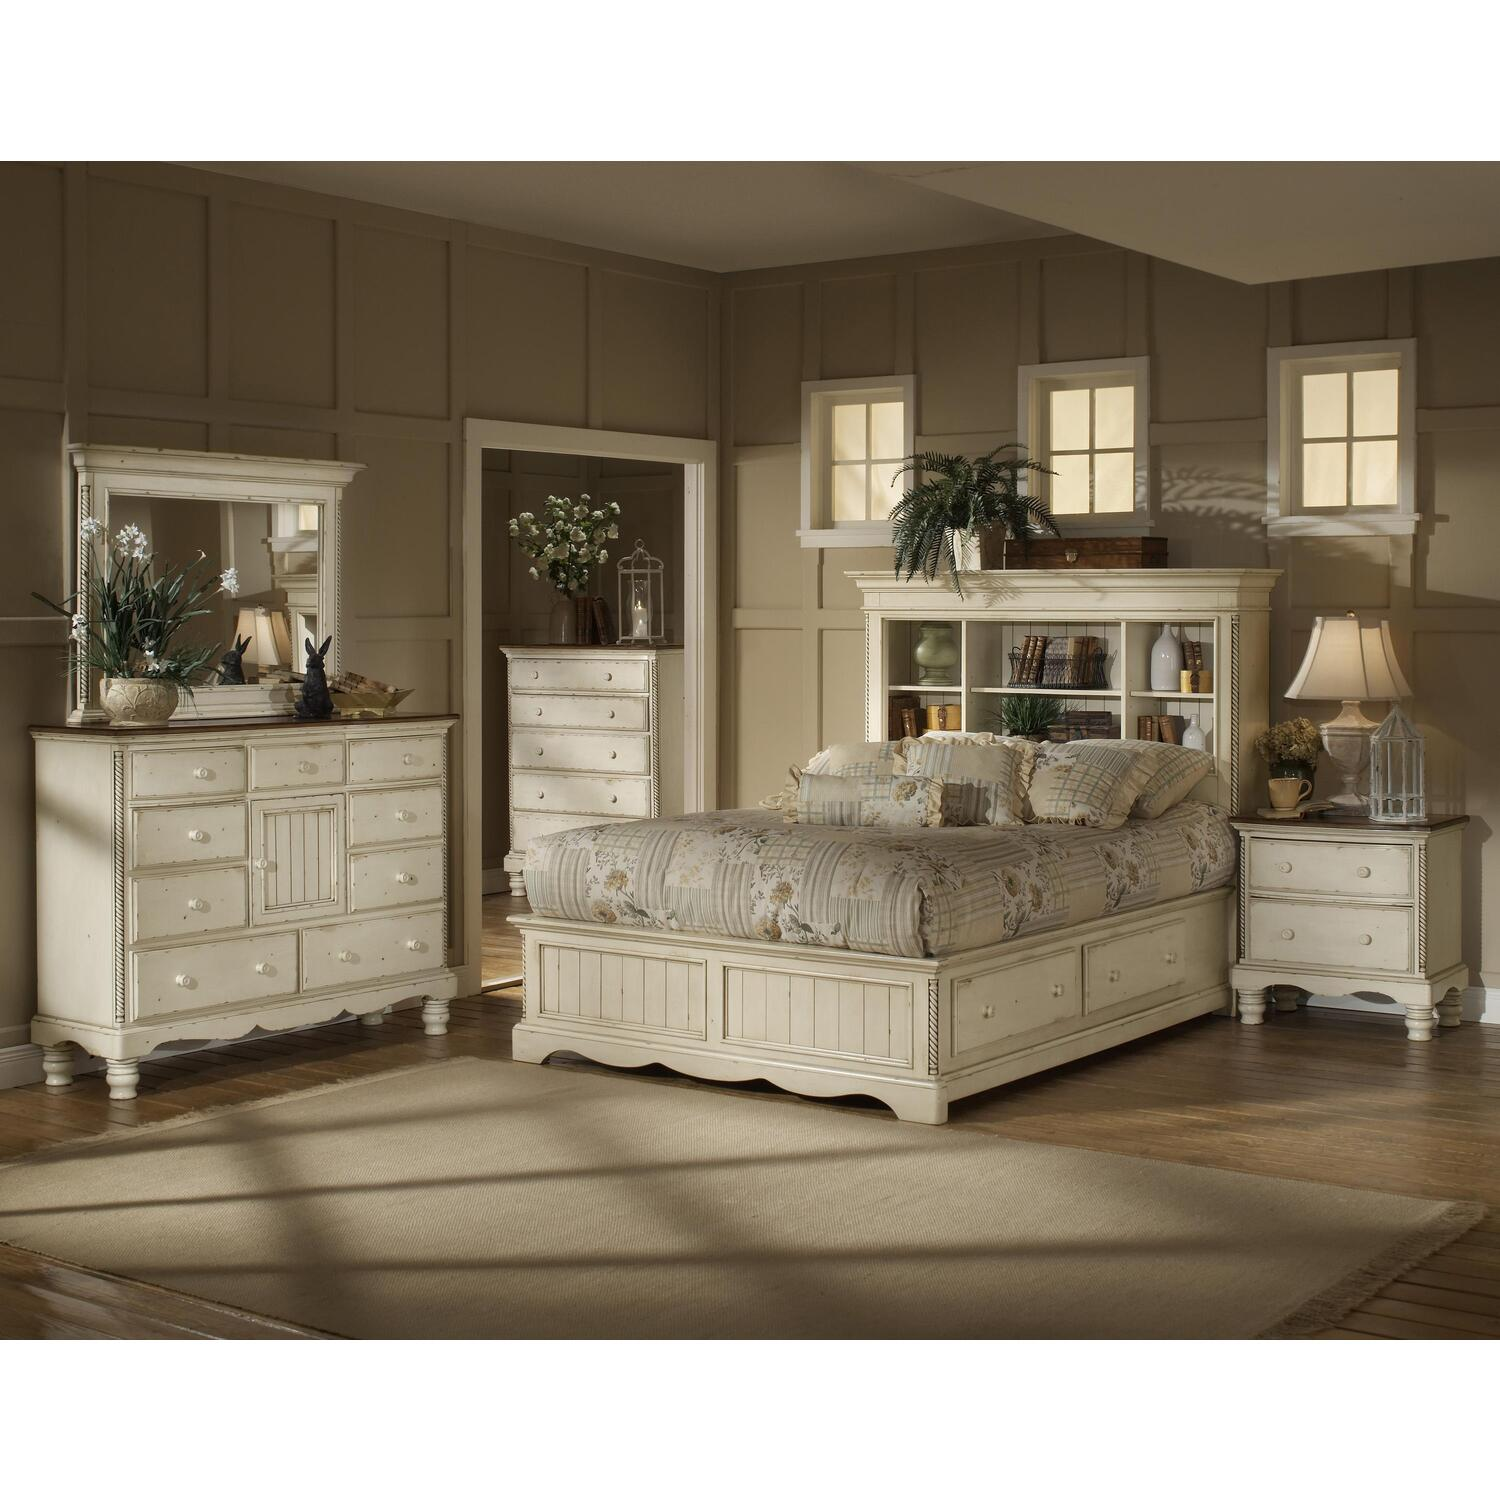 Hillsdale Furniture Wilshire Bookcase Bed W Storage 4 Piece Bedroom Set Queen By Oj Commerce